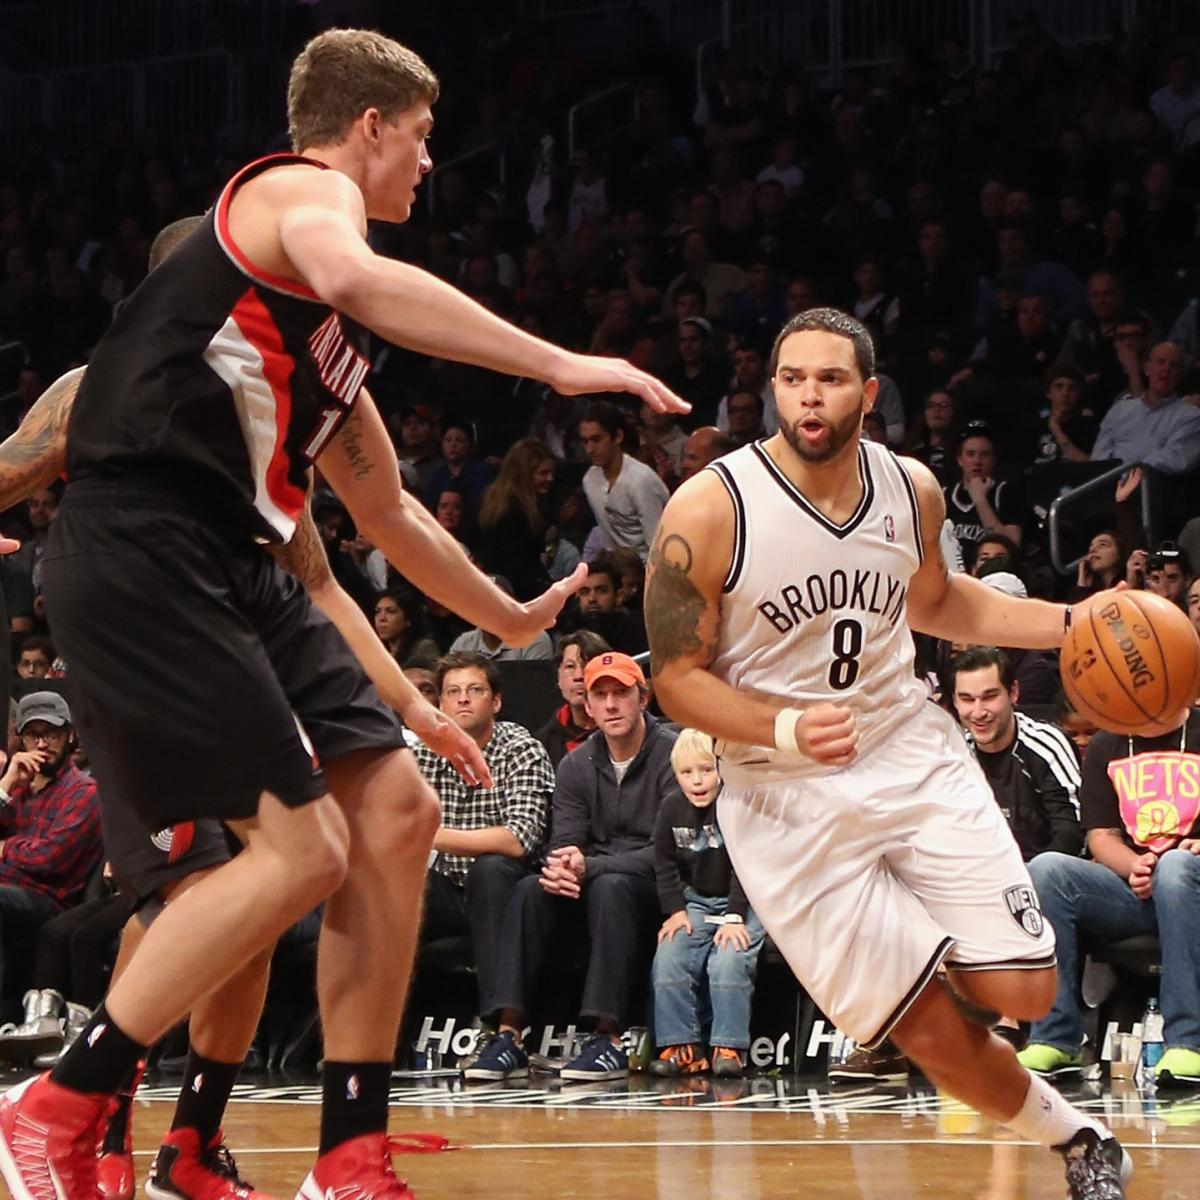 Warriors Vs Nets Full Game Highlights: New York Knicks Vs. Brooklyn Nets: Preview, Prediction And